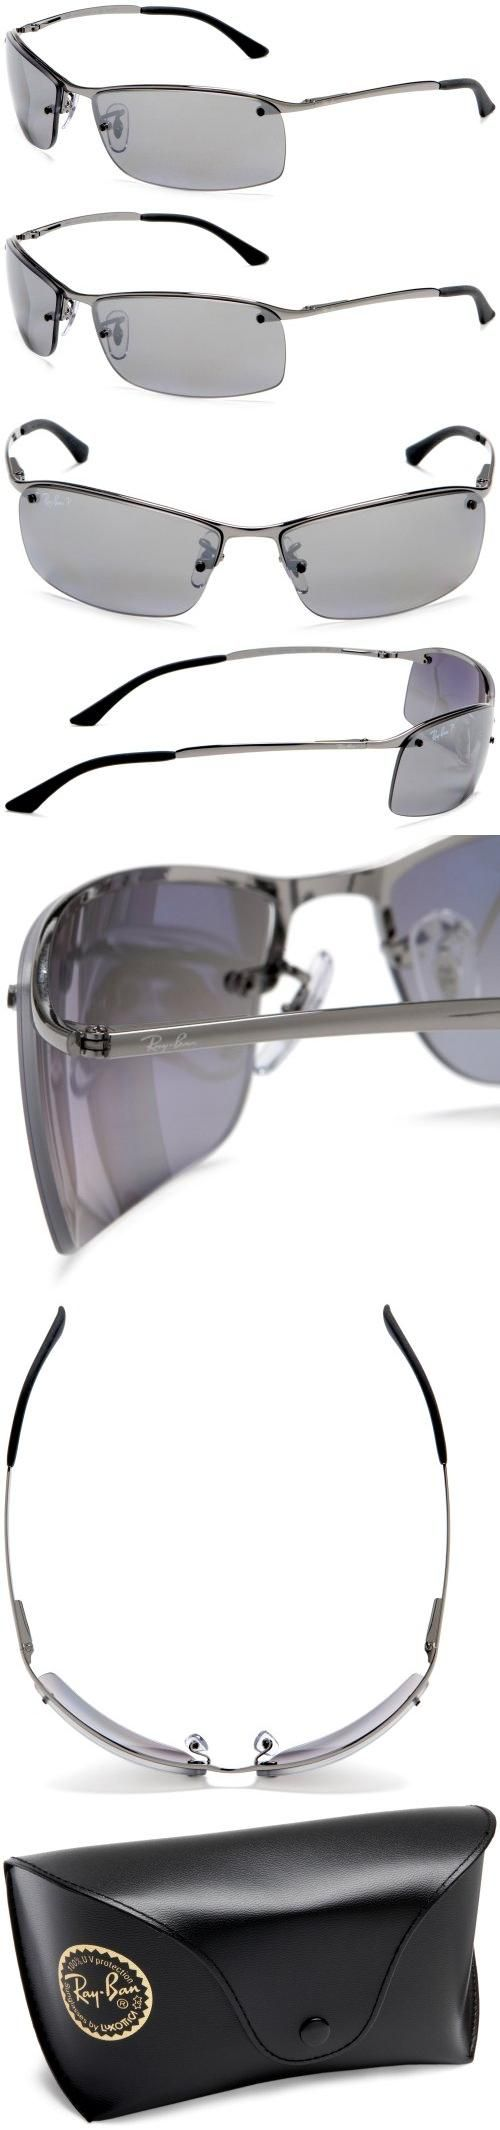 Ray-Ban RB3183 Sunglasses Polarized, Gunmetal/Polarized Smoke // http://www.ray-ban.com/spain/products/sun/RB3183